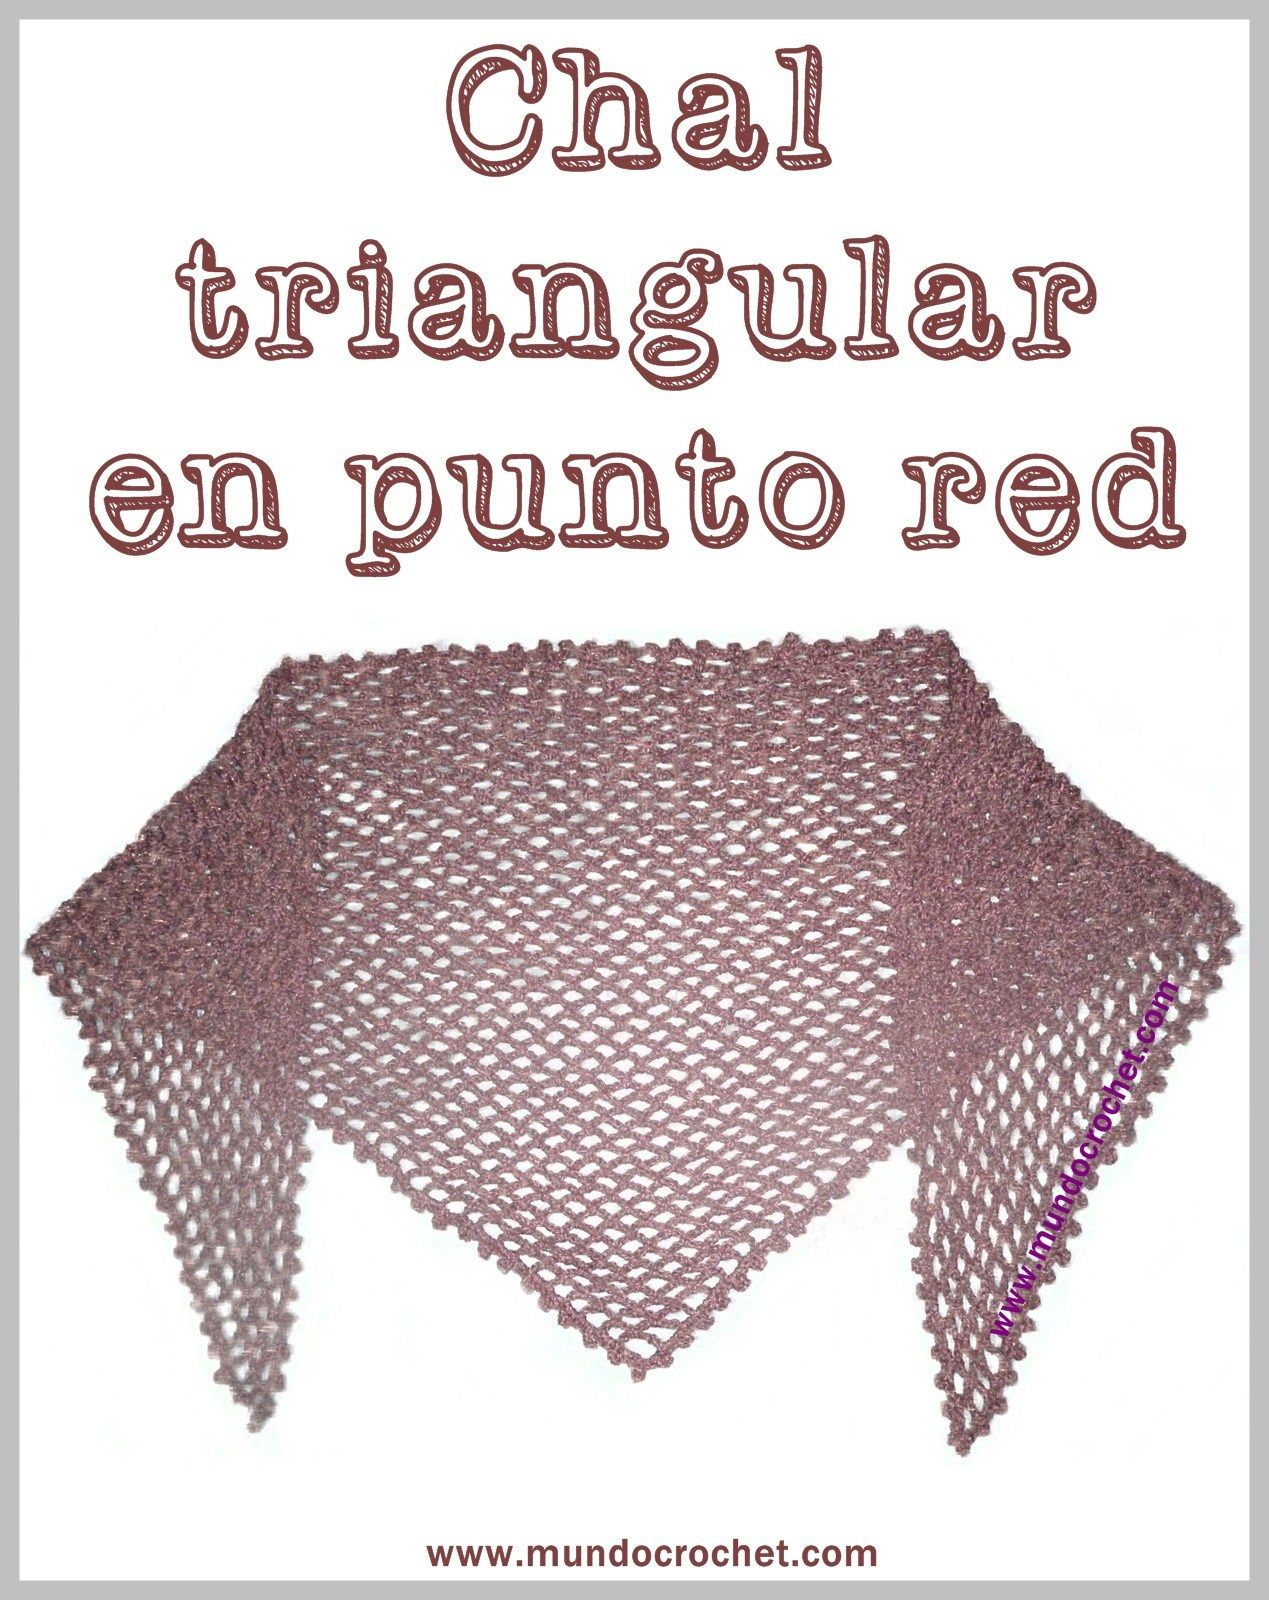 Patron chal triangular en punto red a crochet o ganchillo | chals ...